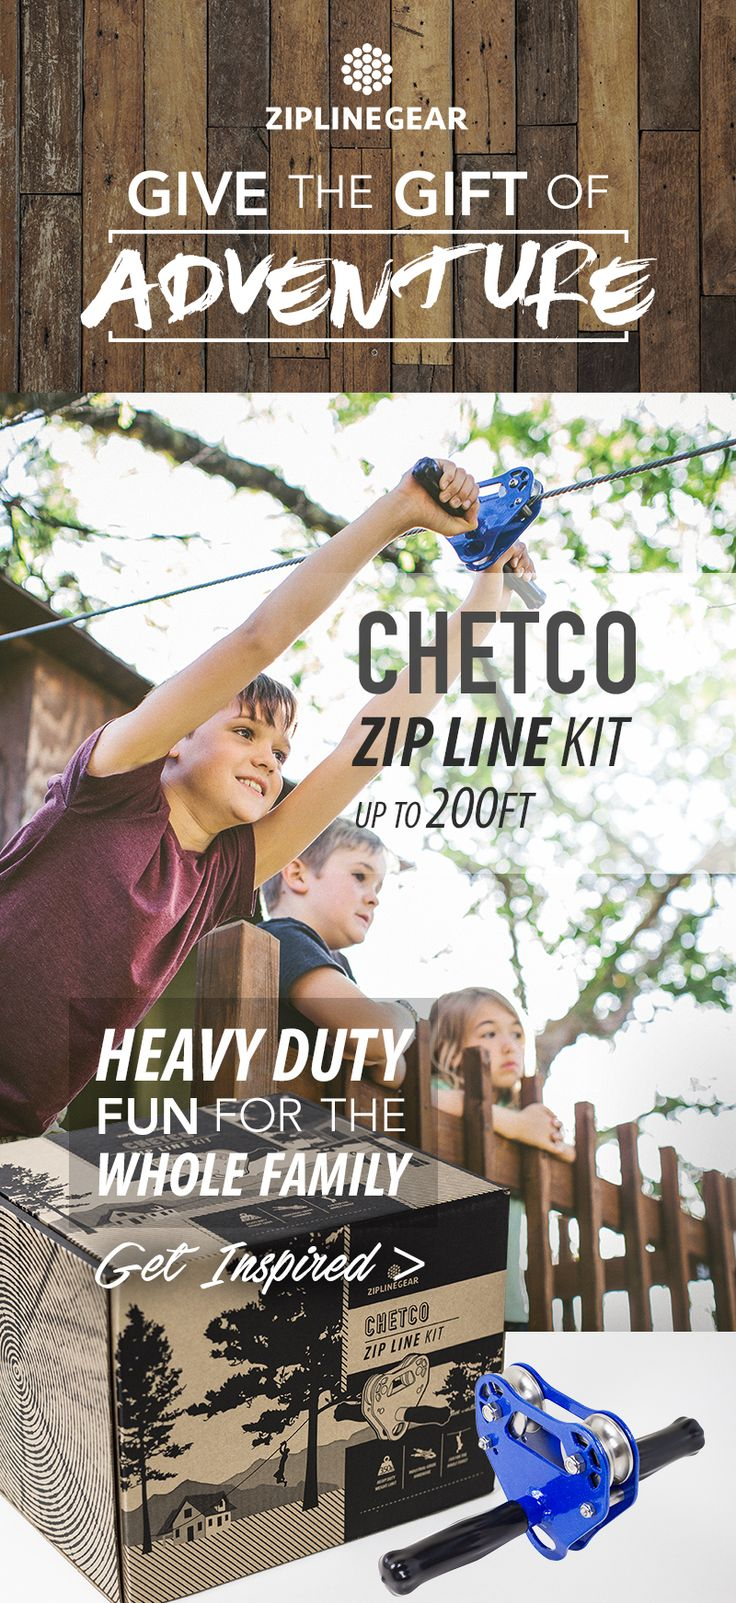 The Chetco Kit is the most basic zip line kit of ZipLineGear's kit series, boasting a 350LB weight limit and built to last! Zip Lining gets the whole family outdoors for the ultimate backyard activity.